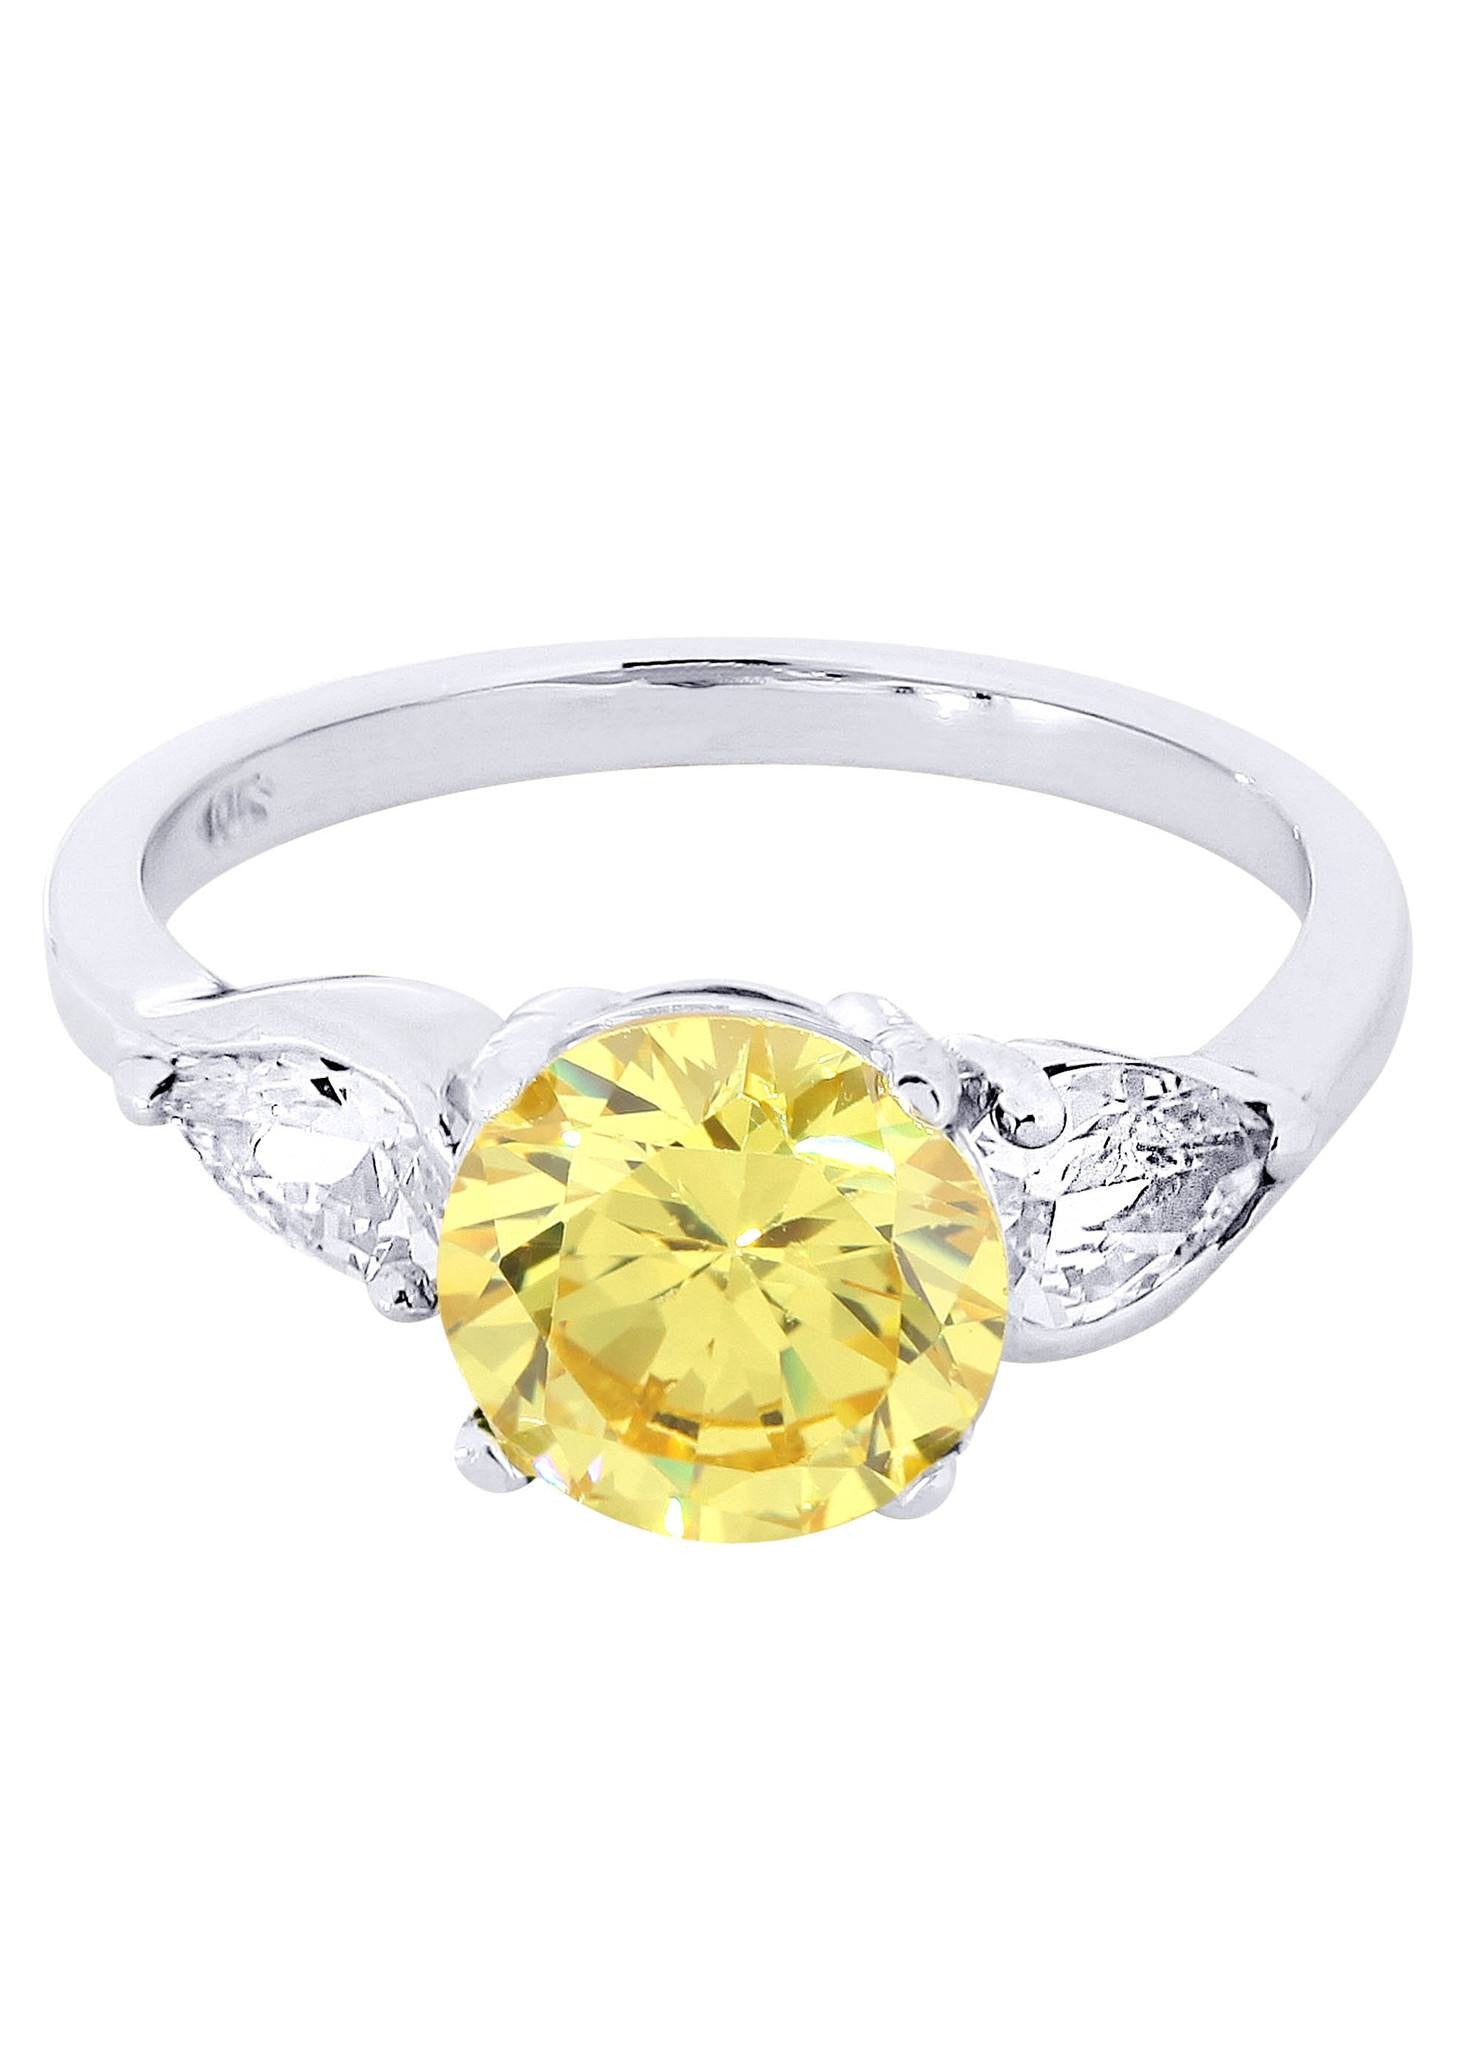 citrine promise ring 10k gold 4 3 grams frostnyc